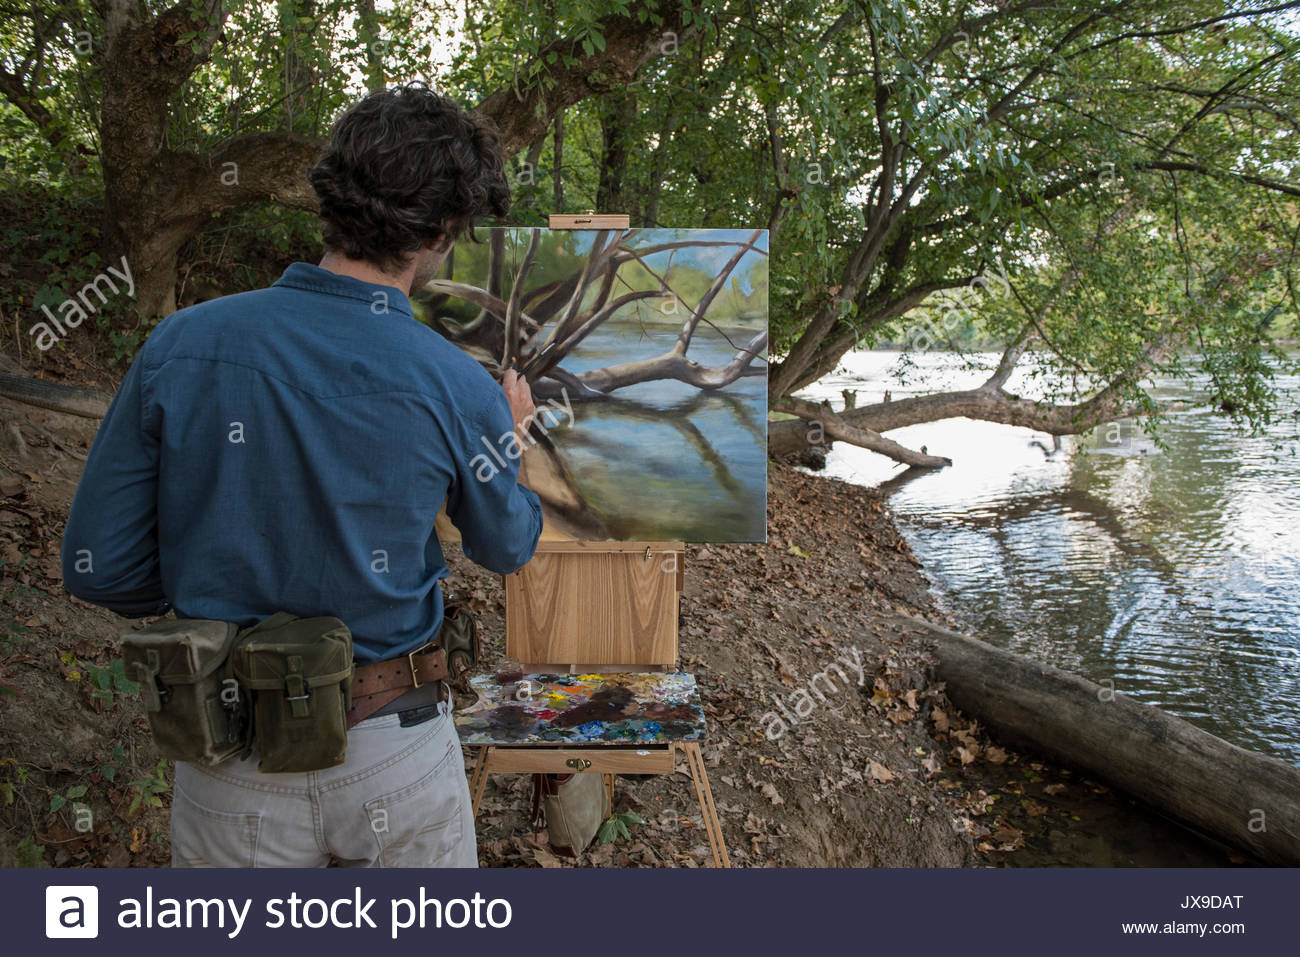 A self-trained painter who lives working on a plein air painting along the banks of the French Broad River. - Stock Image